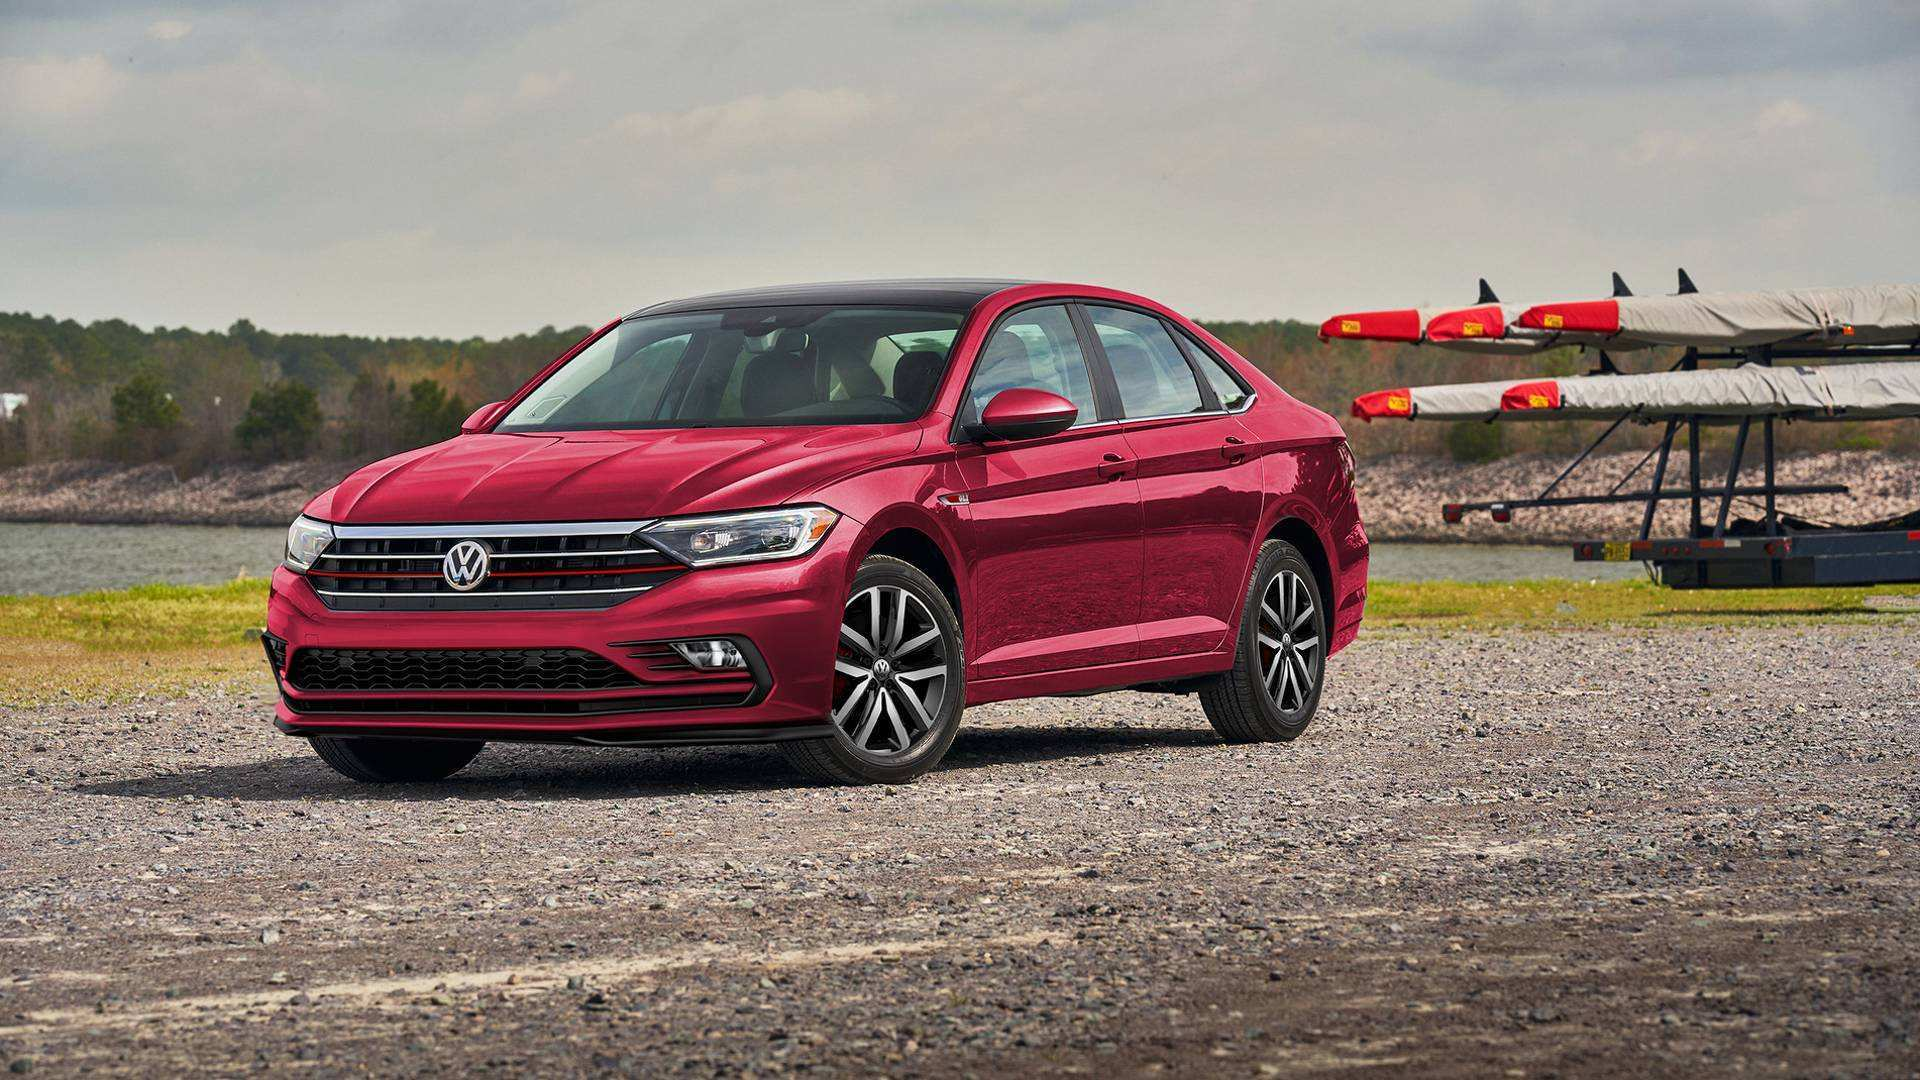 90 All New 2020 Vw Jetta Images